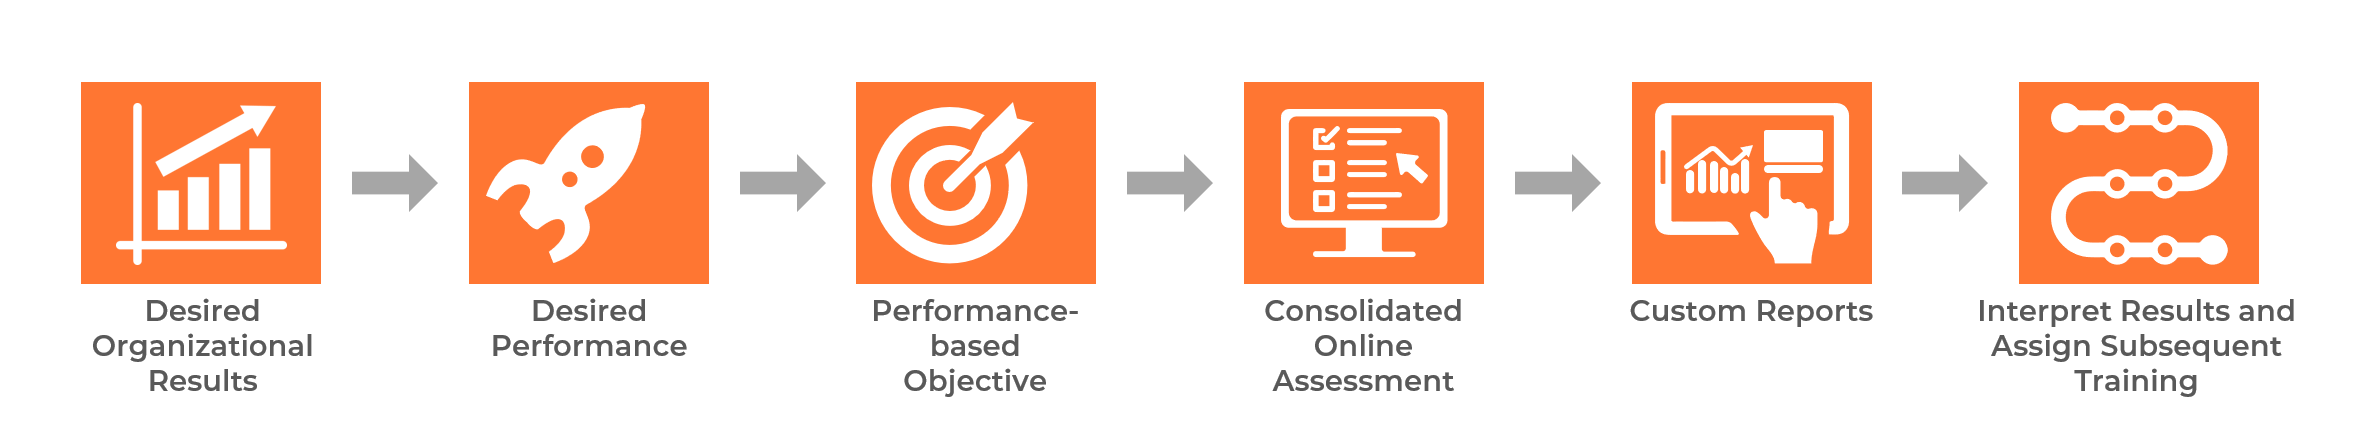 Online Assessments to Set Adaptive Learning Paths 1